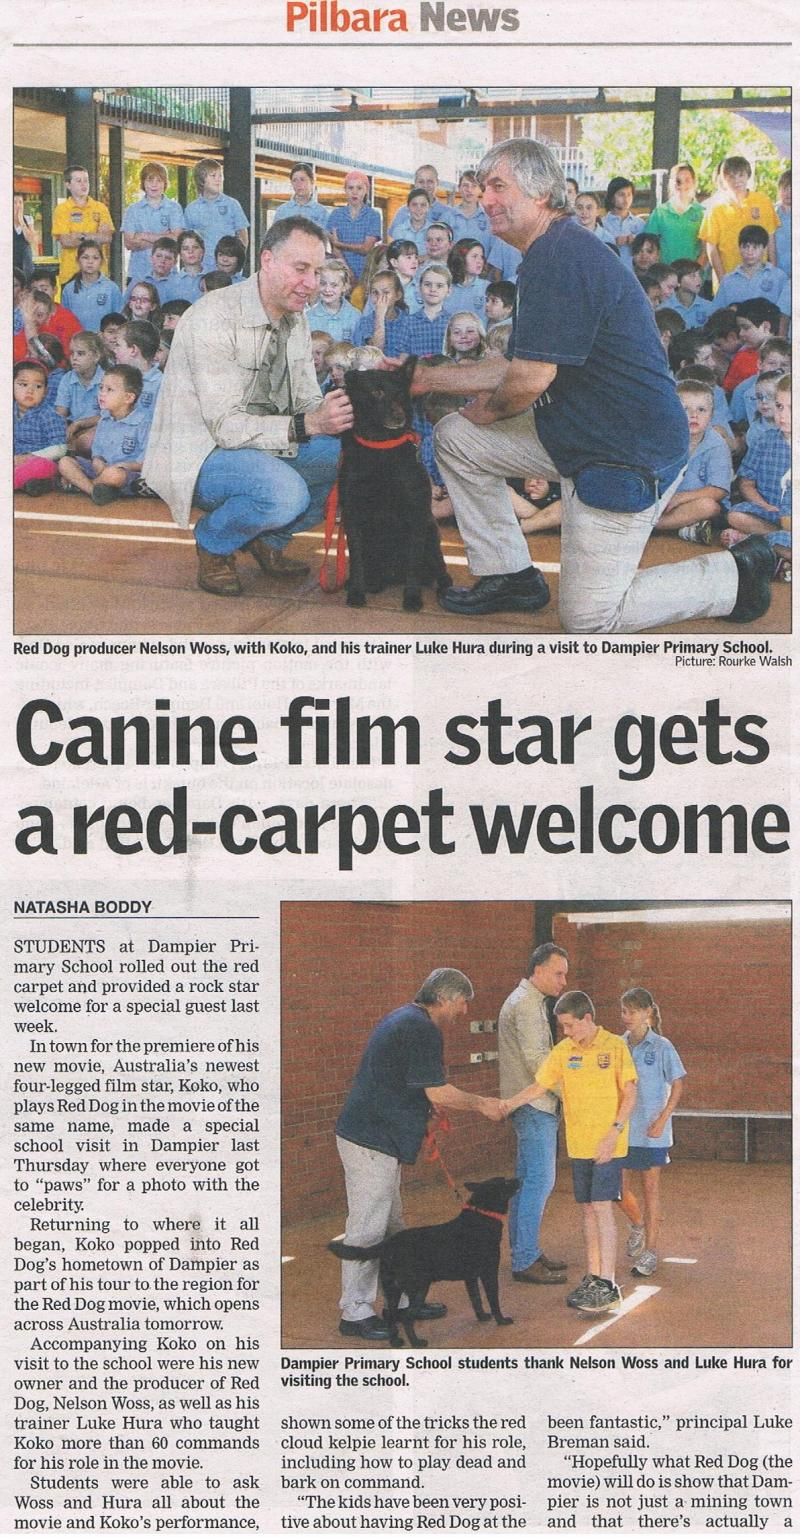 Pilbara News article #3 001.jpg